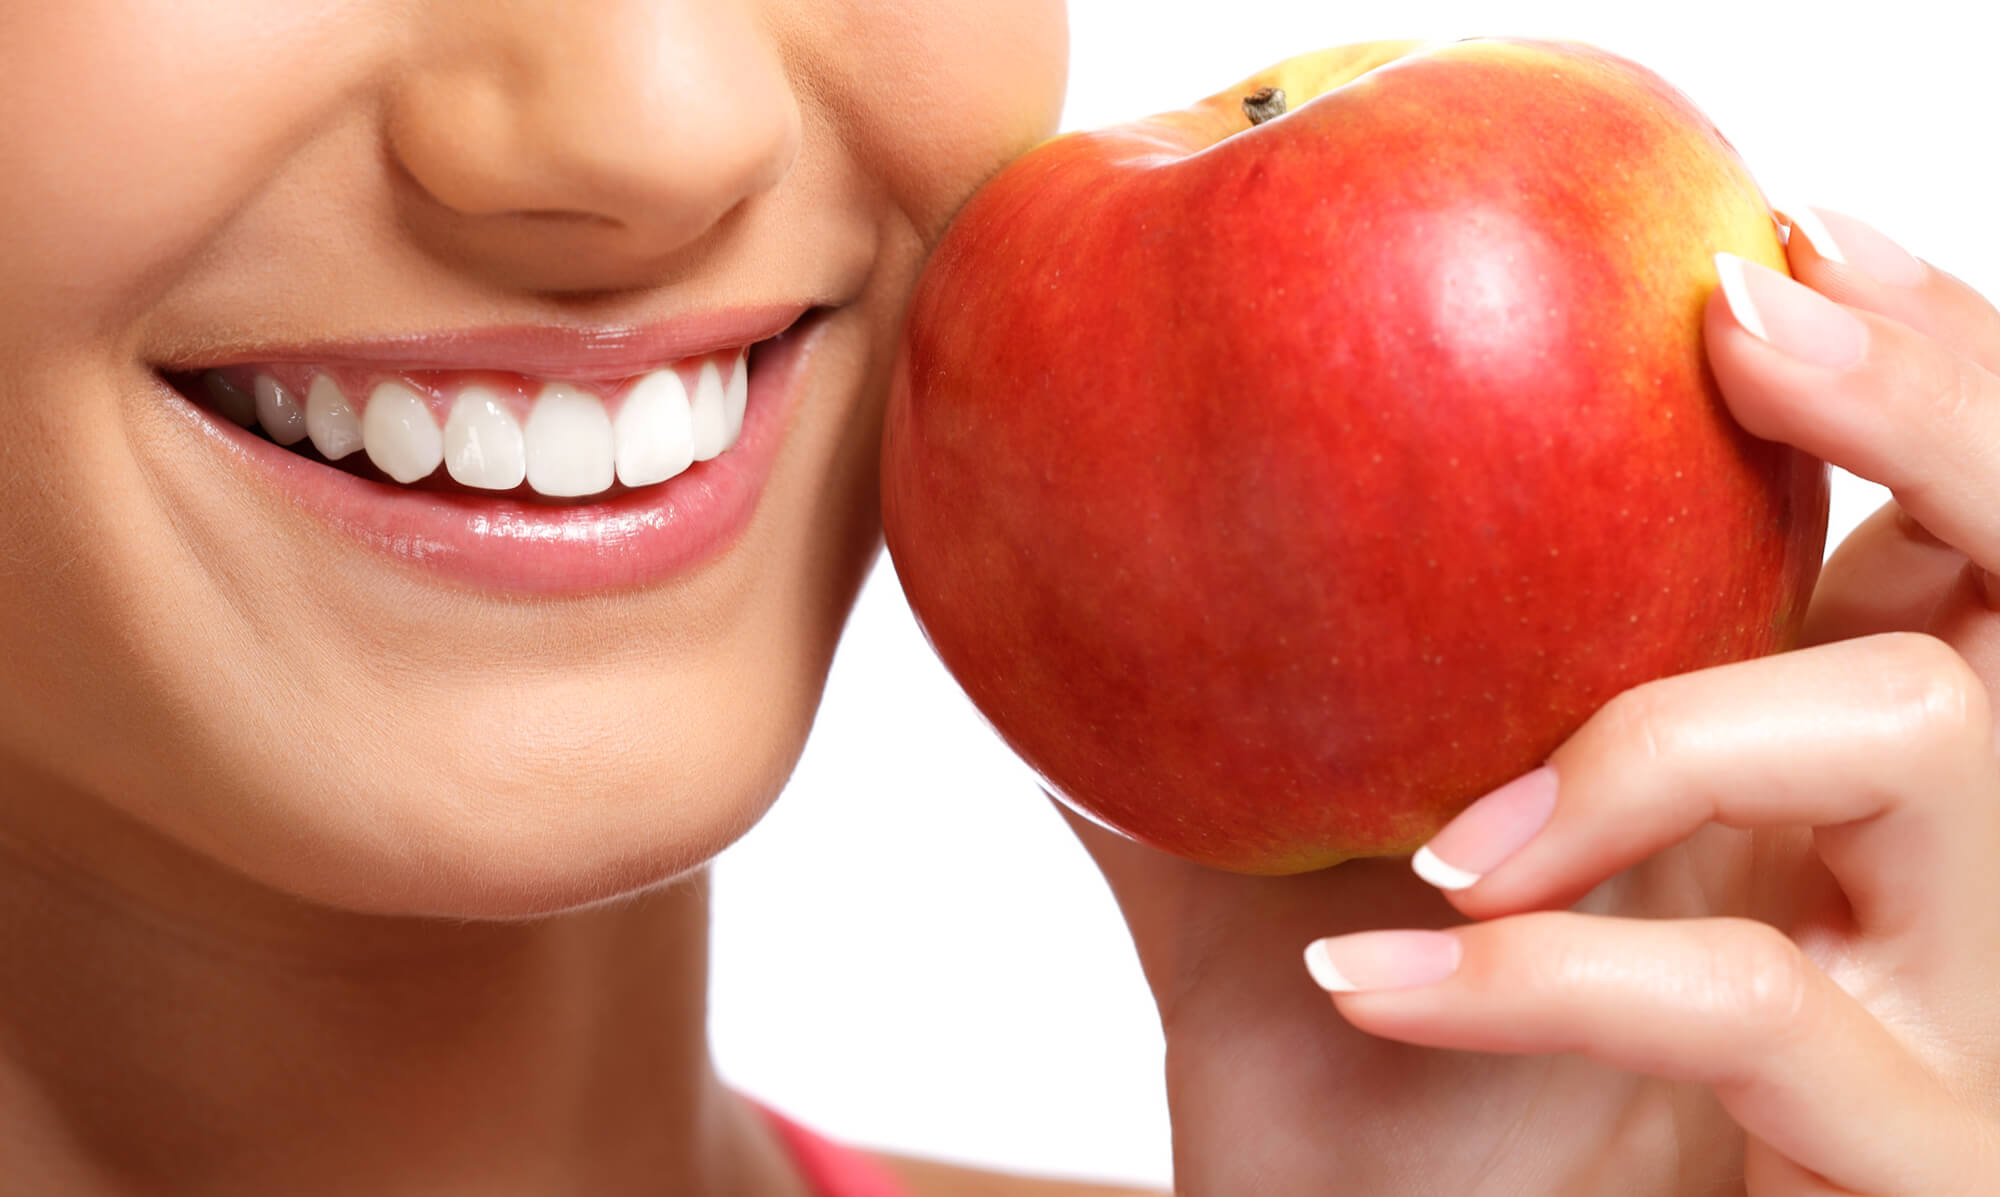 where is the best pembroke pines dental implants?